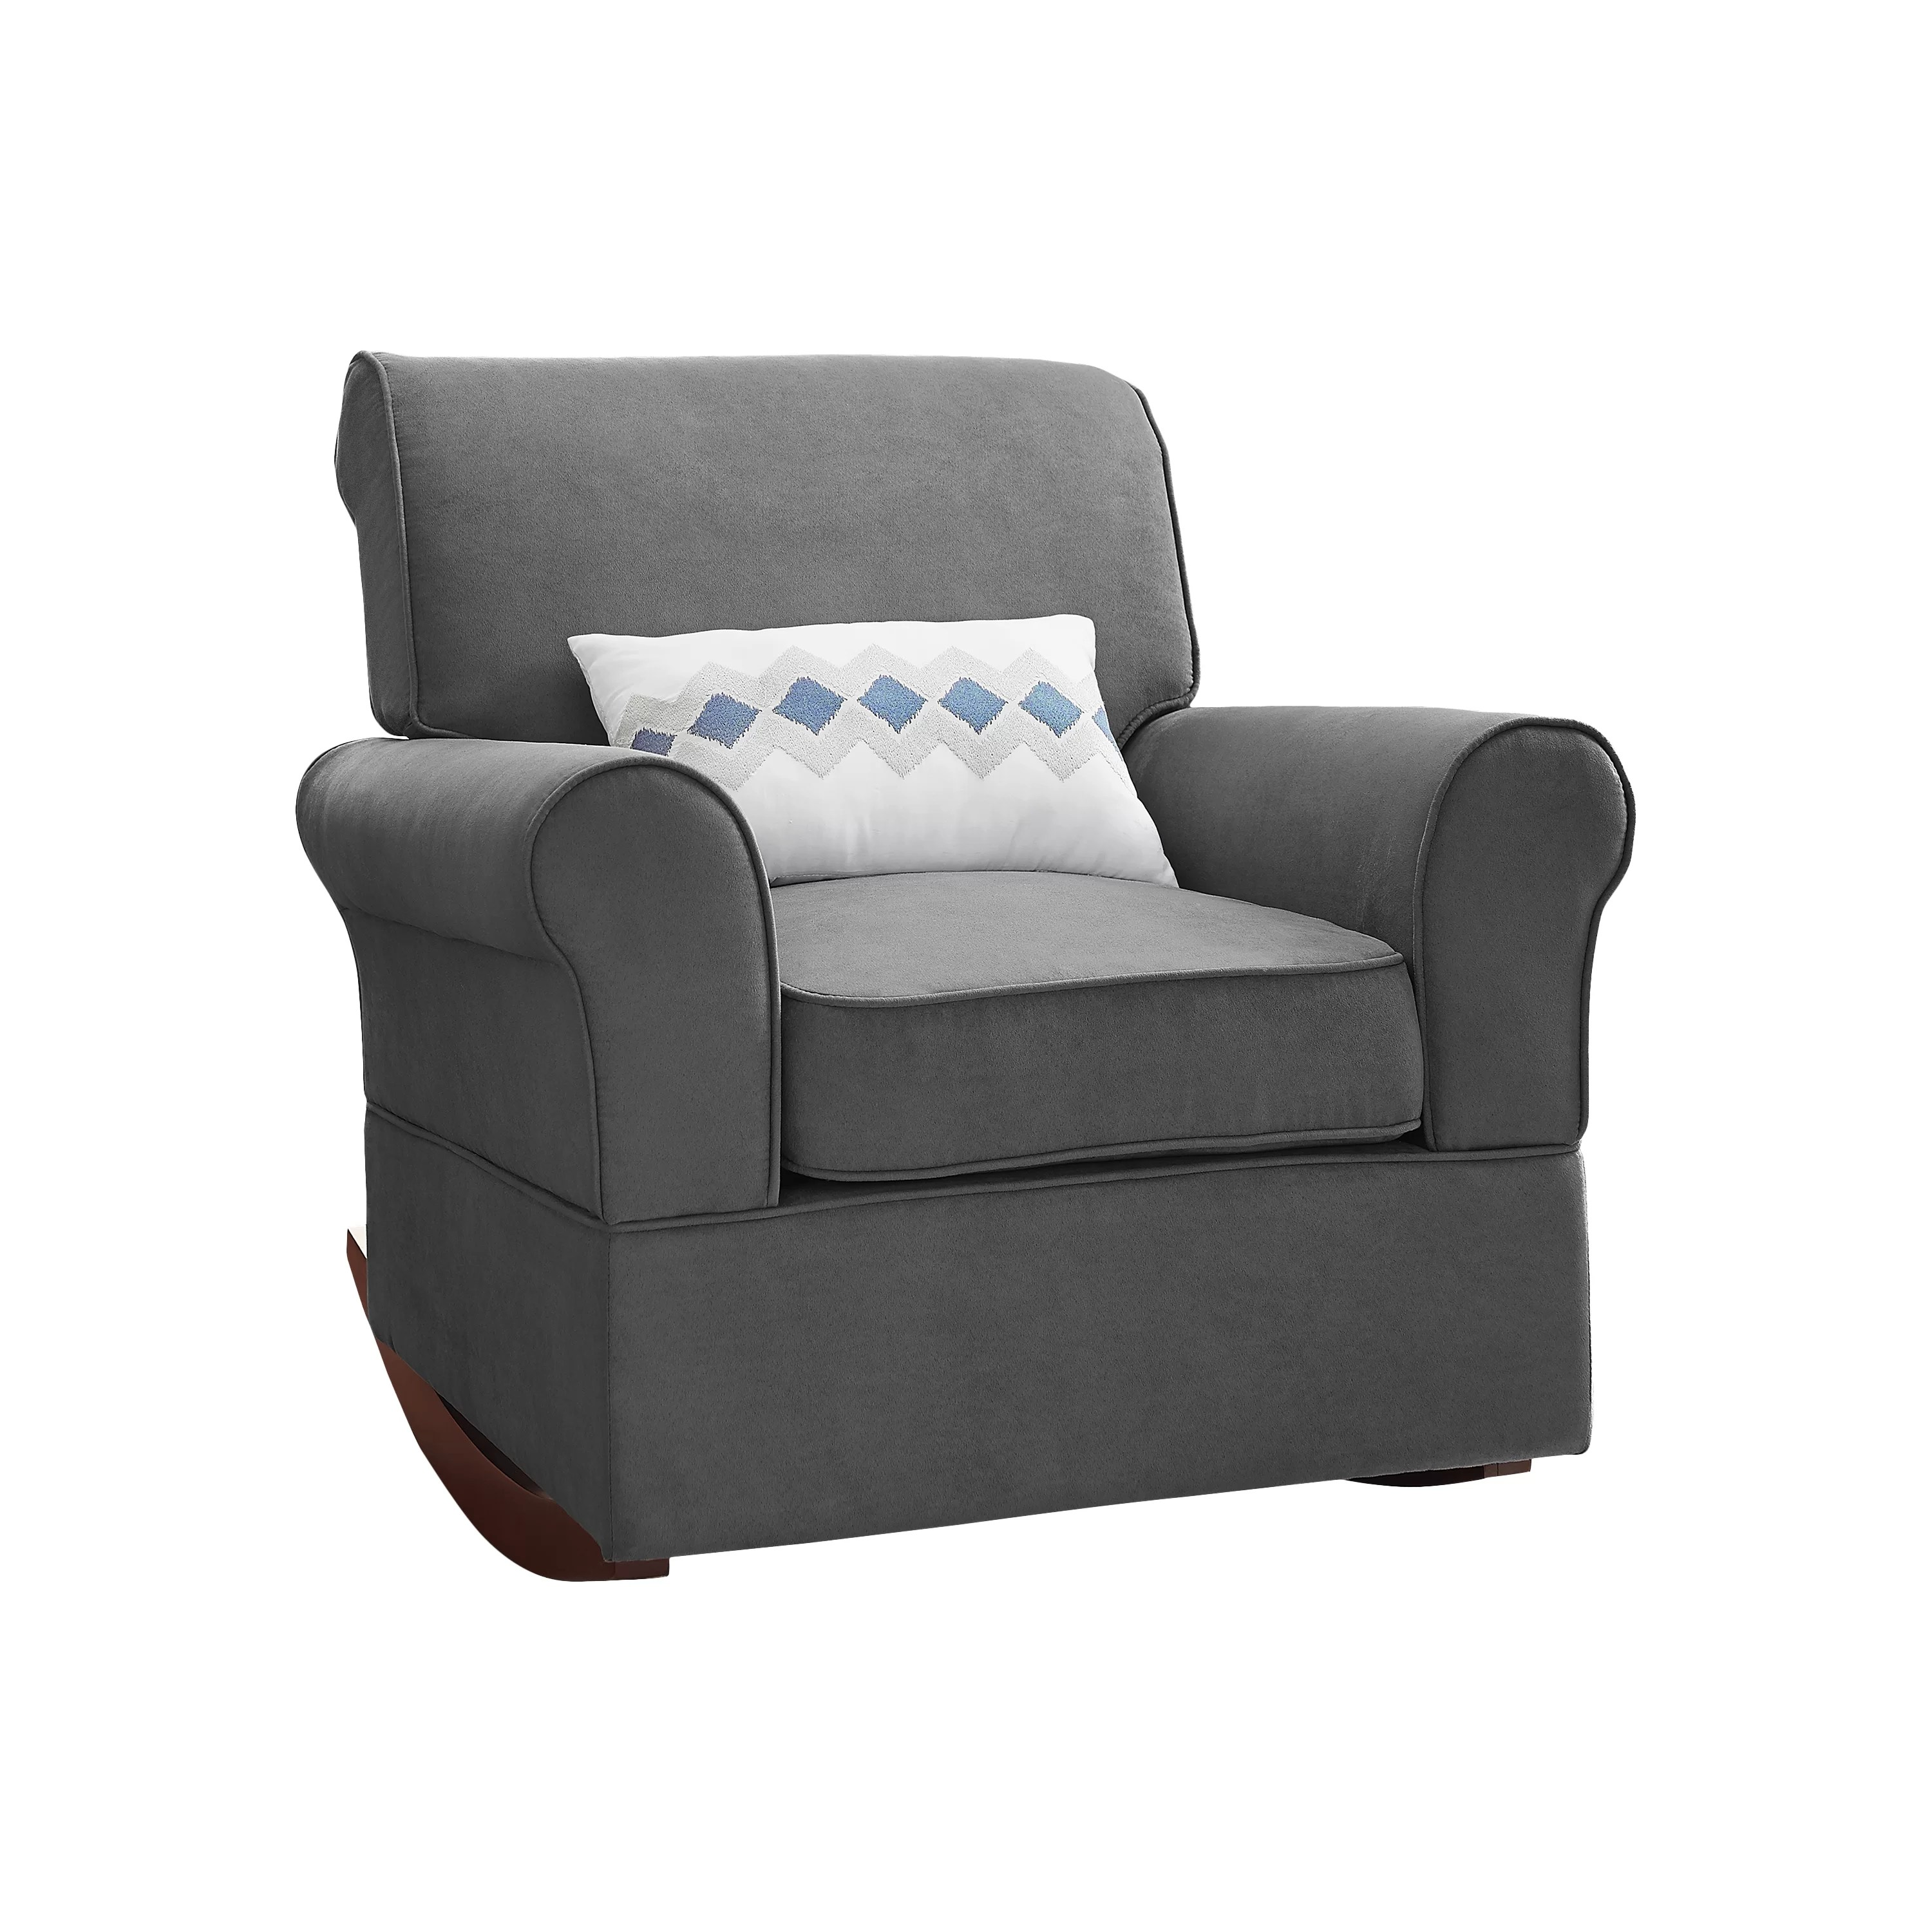 dorel rocking chair reclining beach with footrest living baby relax mackenzie rocker and ottoman